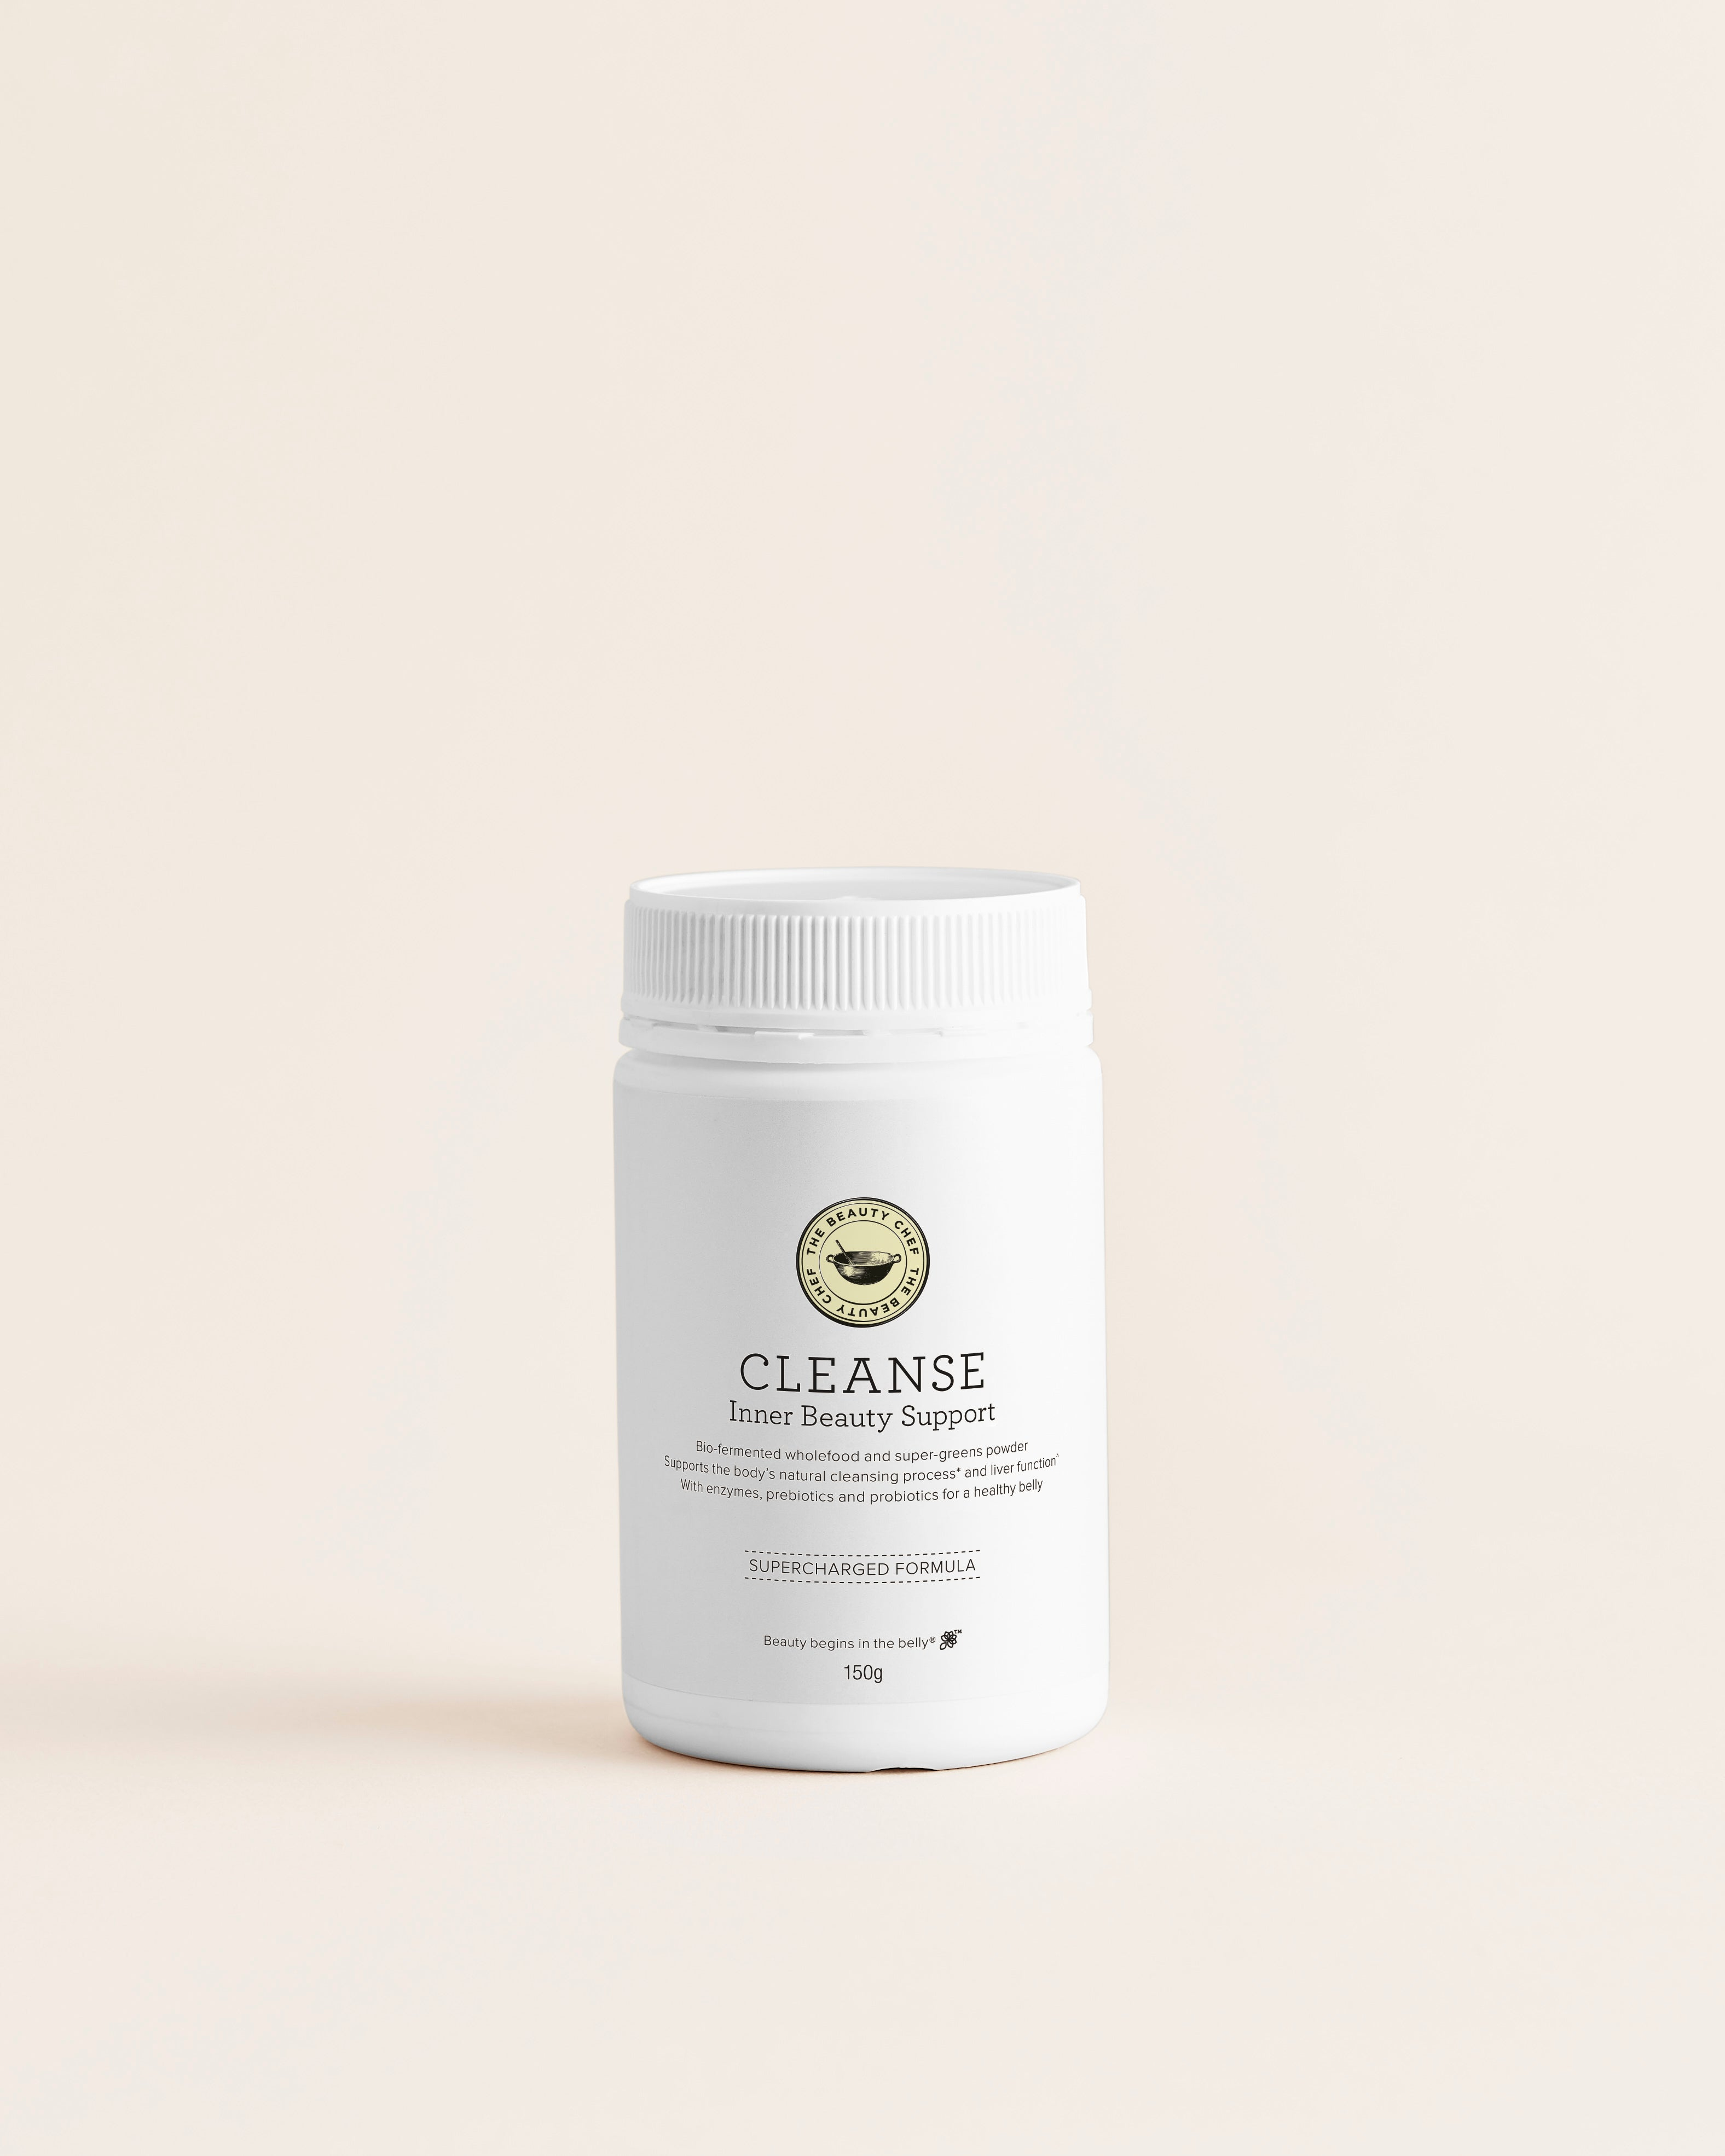 NEW CLEANSE Inner Beauty Support (Supercharged Formula)